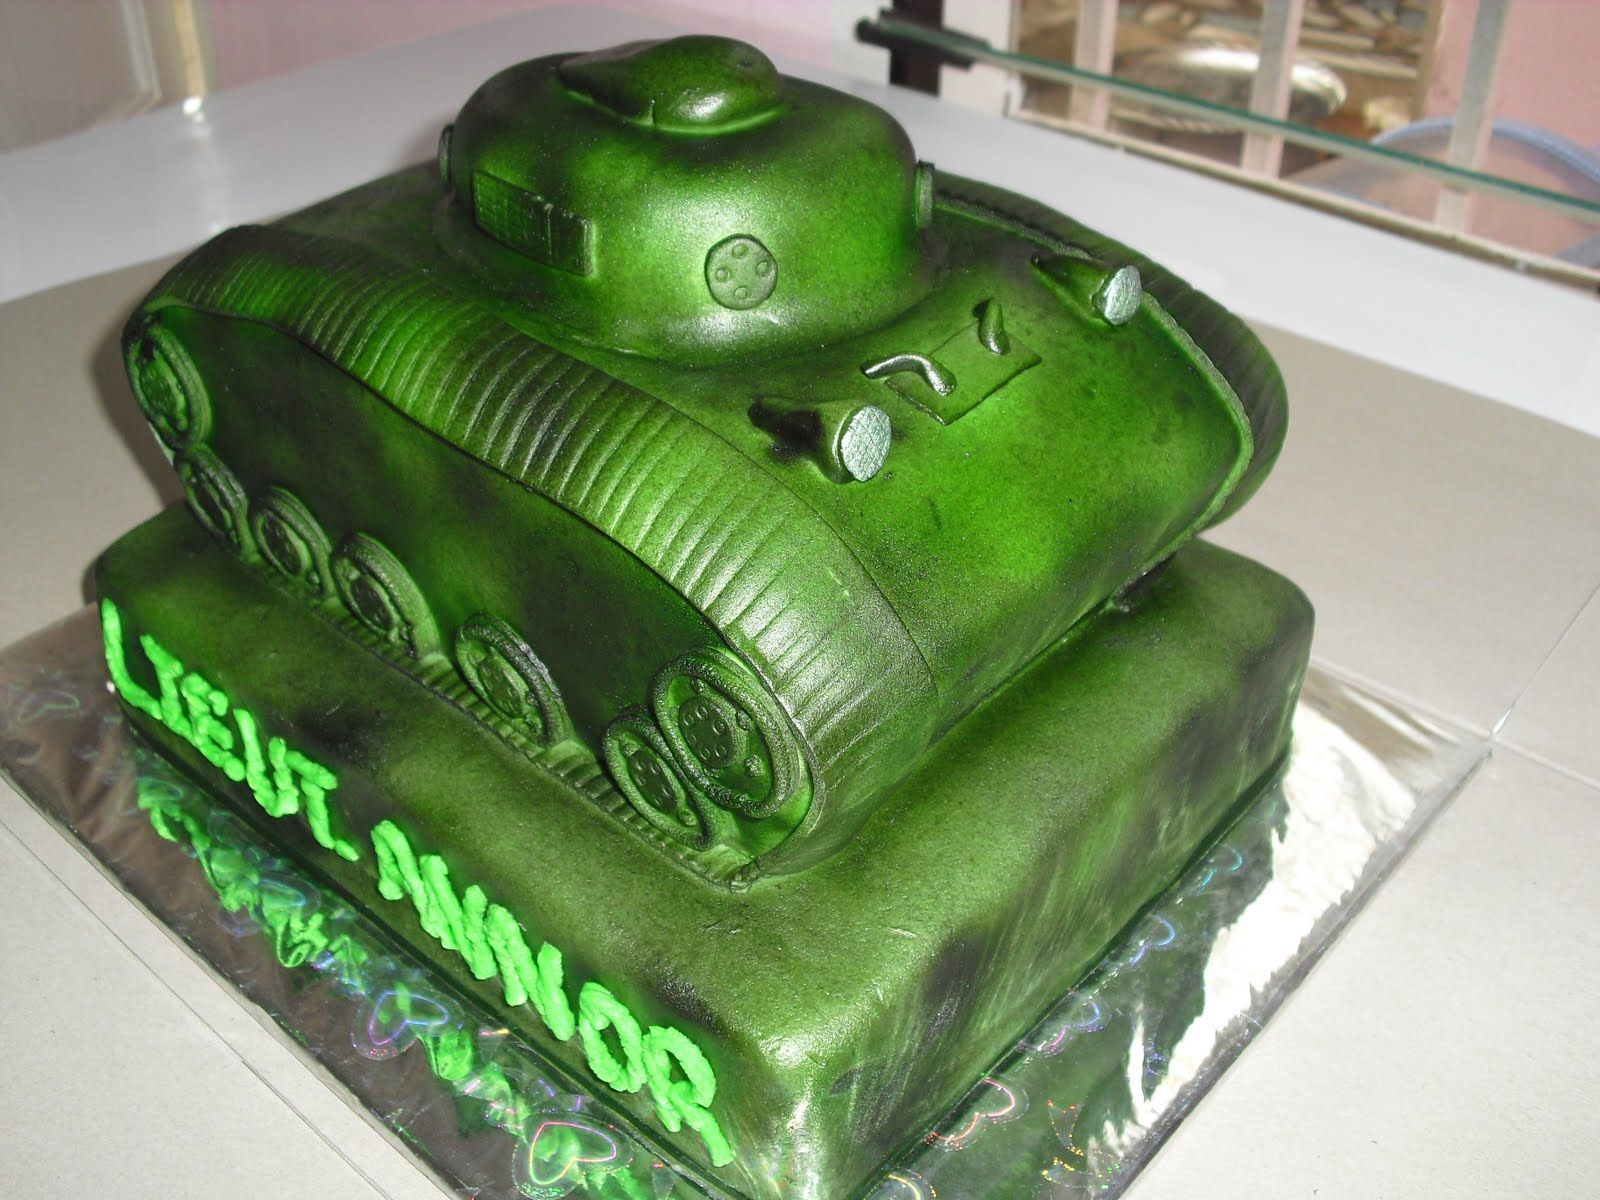 Cakes by Elsie Aikens Military tank cake and others